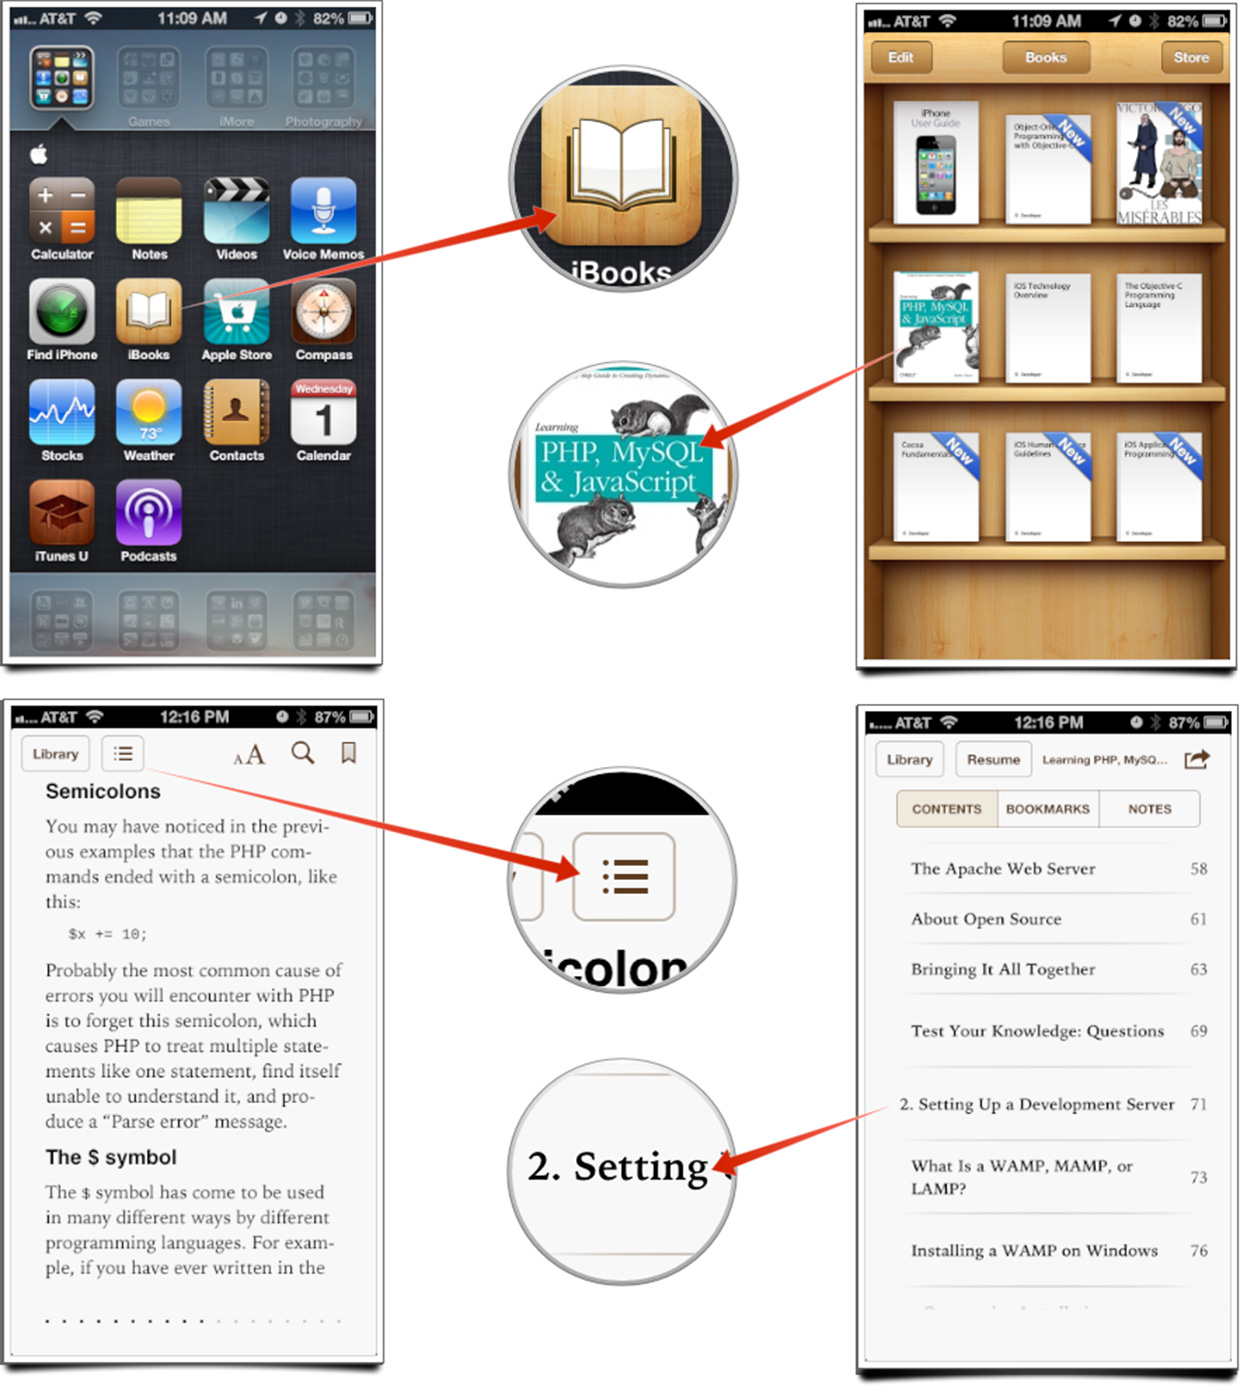 How to view and navigate through a book's table of contents